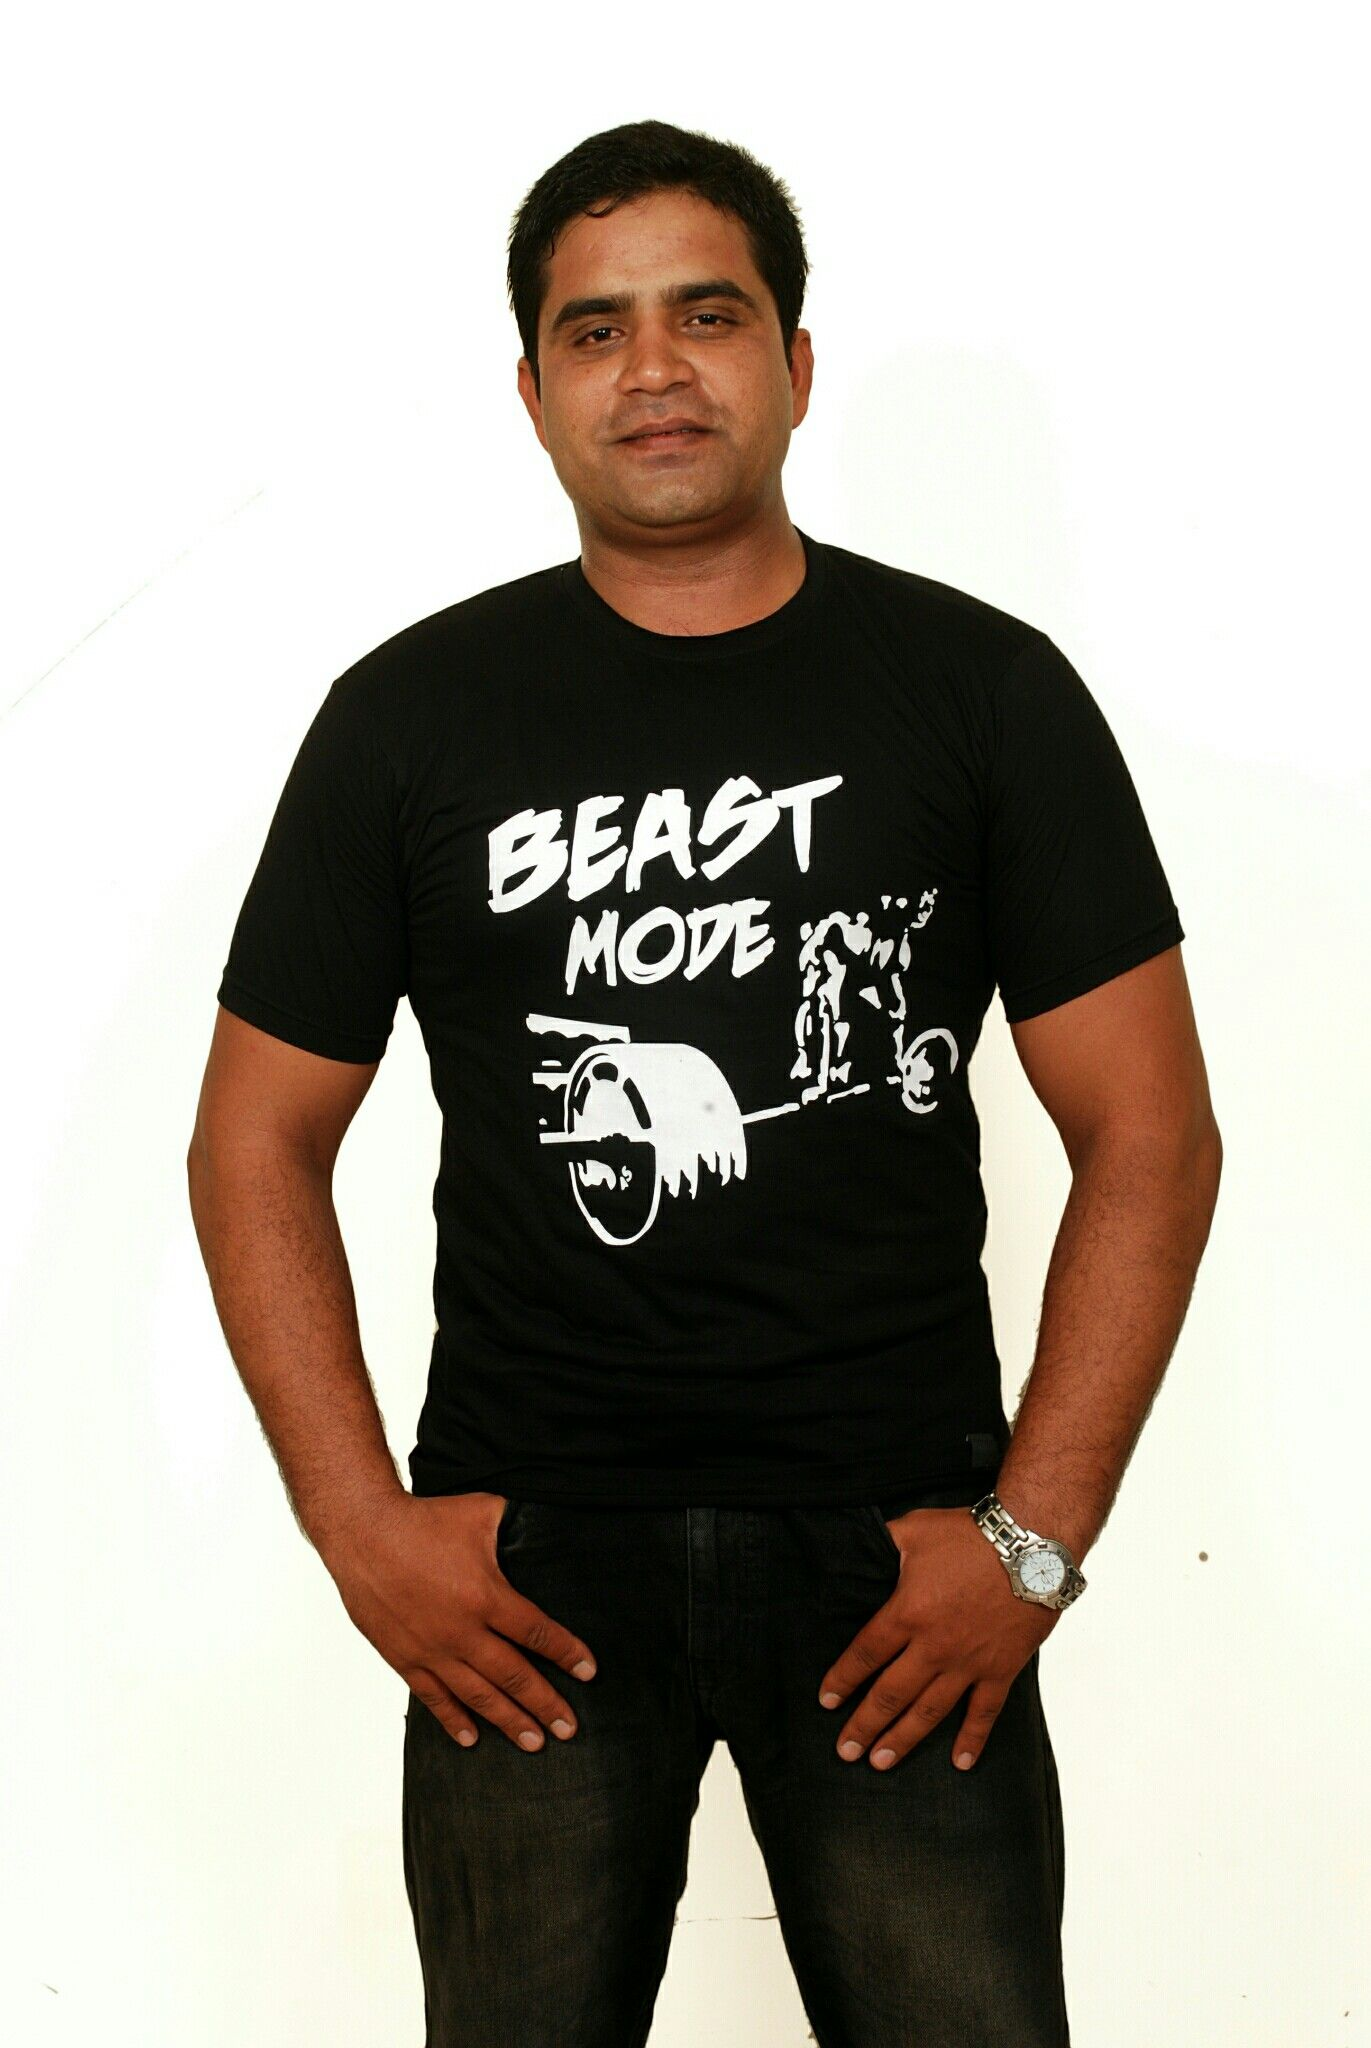 Beast mode gym workout tees launched by club legend